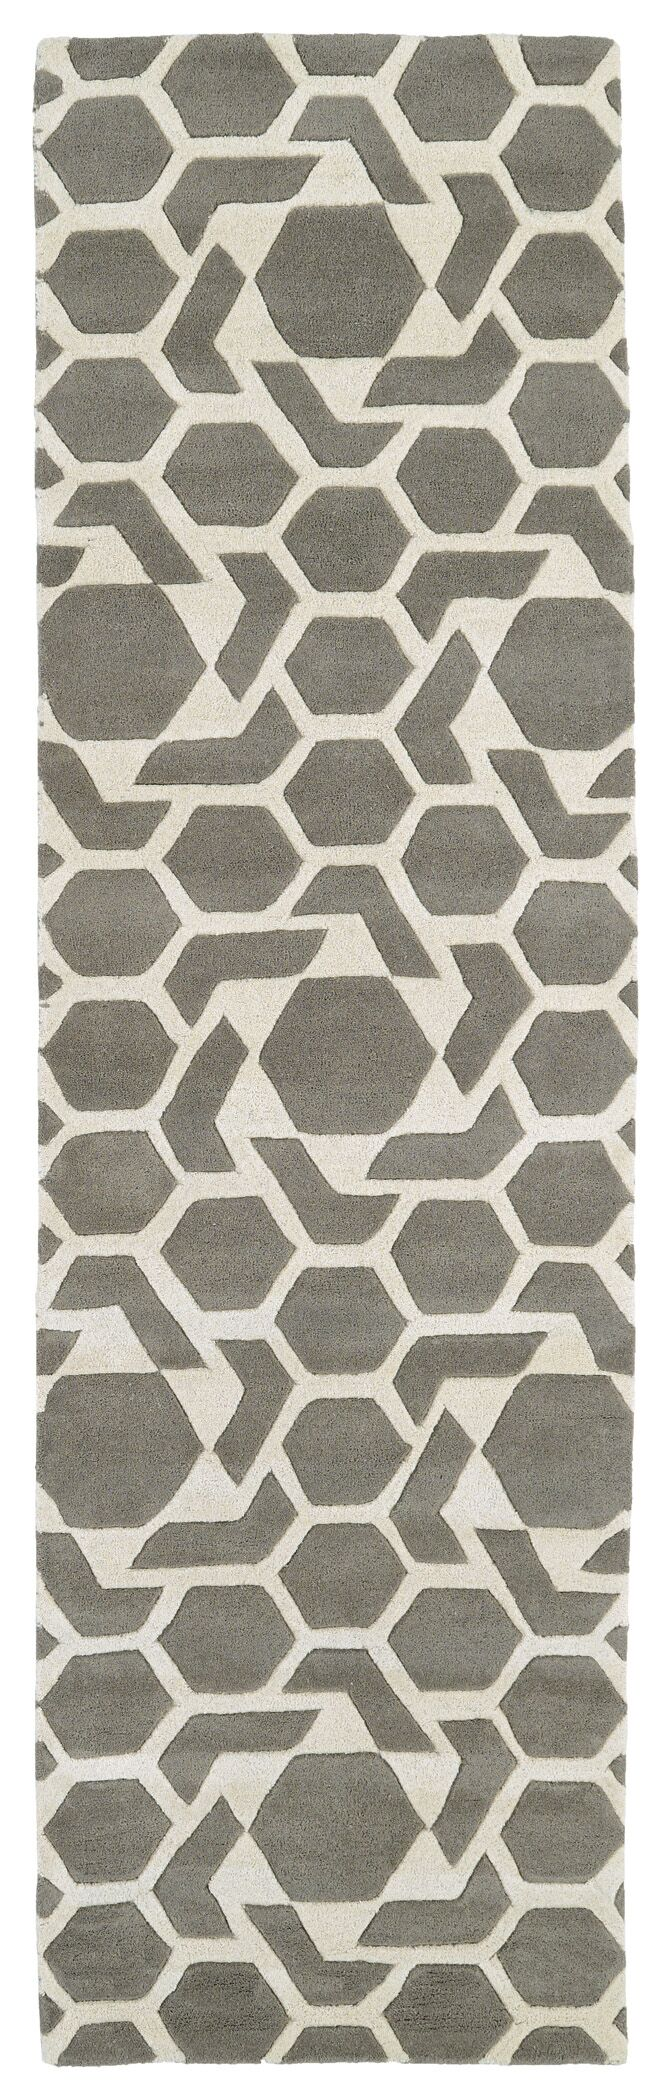 Fairlee Grey/White Area Rug Rug Size: Runner 2'3